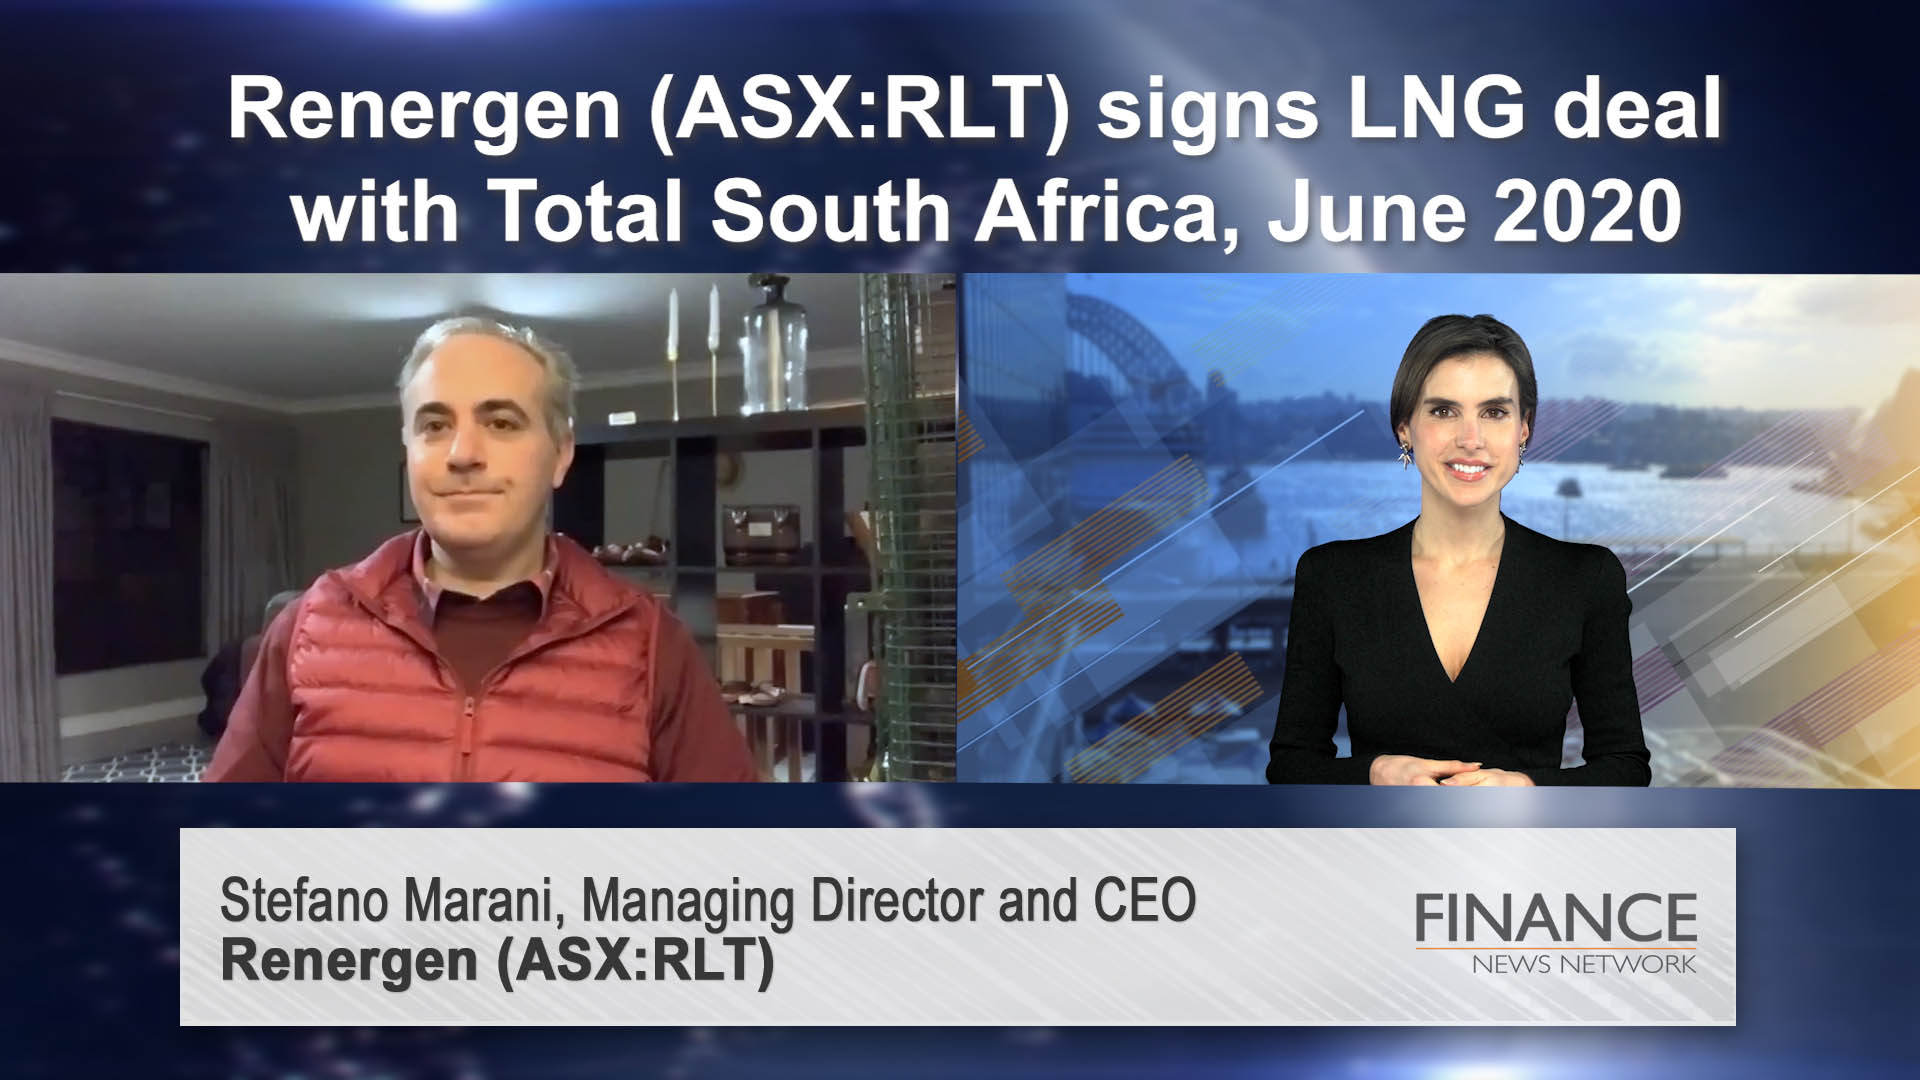 Renergen (ASX:RLT) signs LNG deal with Total South Africa